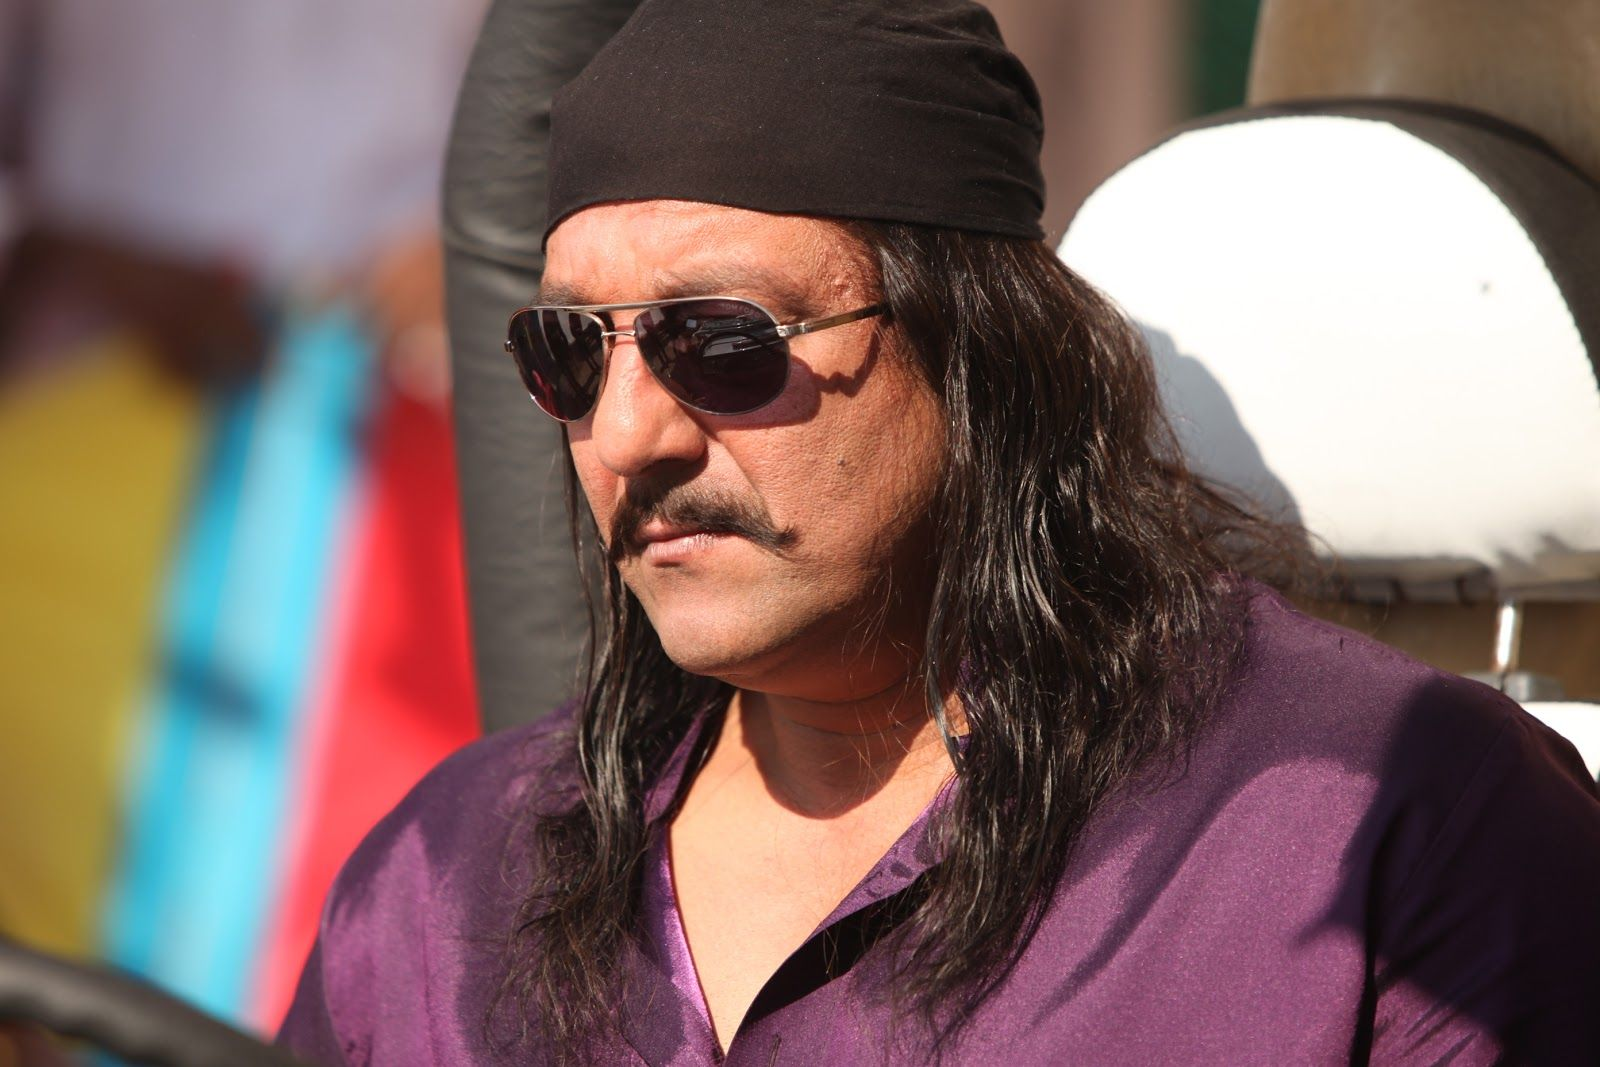 Sanjay Dutt Styles His Mouch With Long Wavy Hair For Son Of Sardar Movember Moustache Erosnow Bollywood Ondemandmovies Long Wavy Hair Wavy Hair Moustache